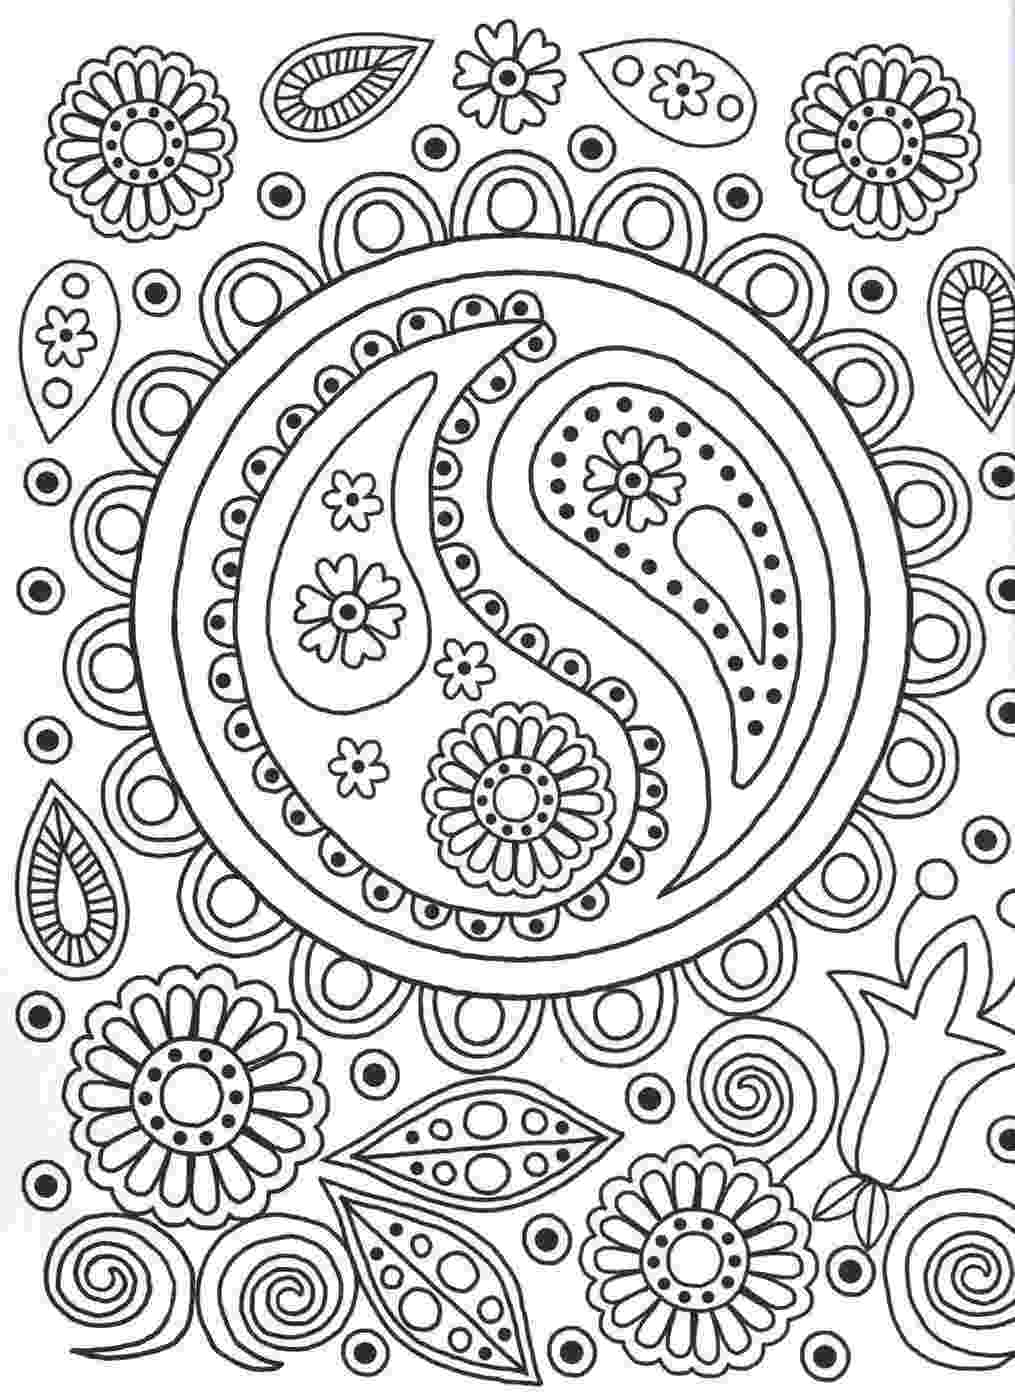 patterned coloring pages fox head with patterns foxes adult coloring pages patterned coloring pages